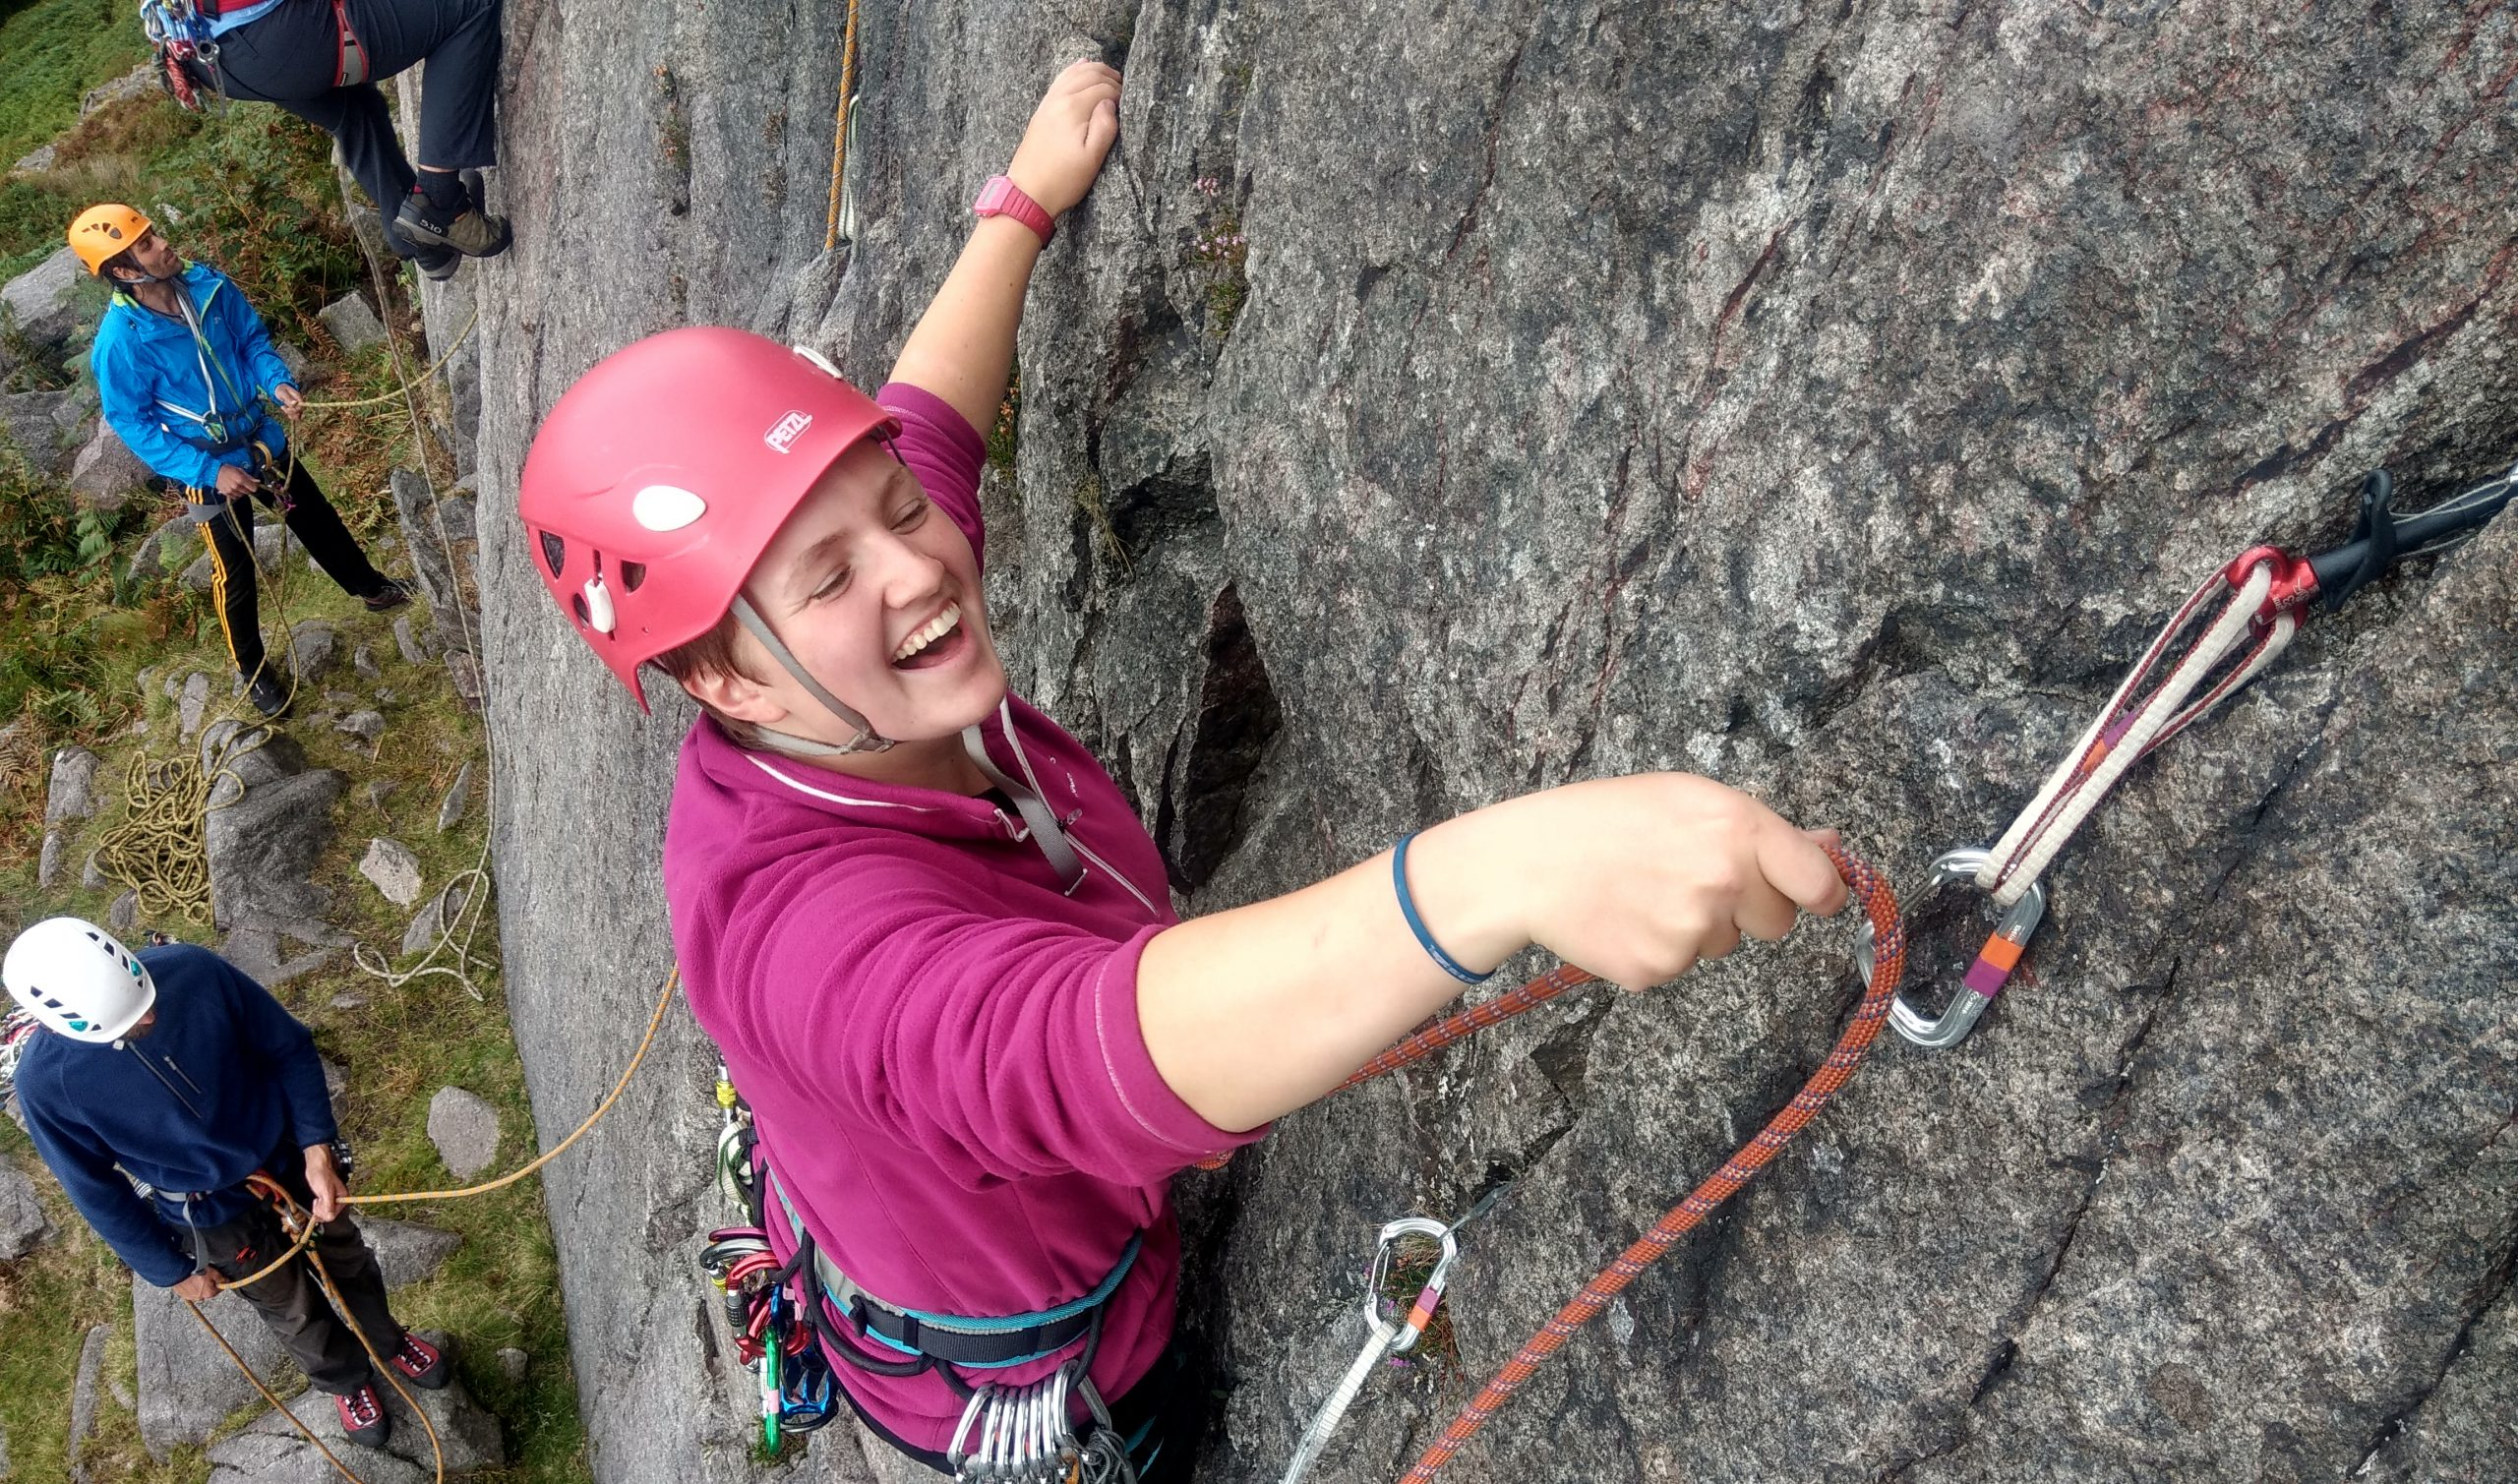 Learning to lead rock climbing course